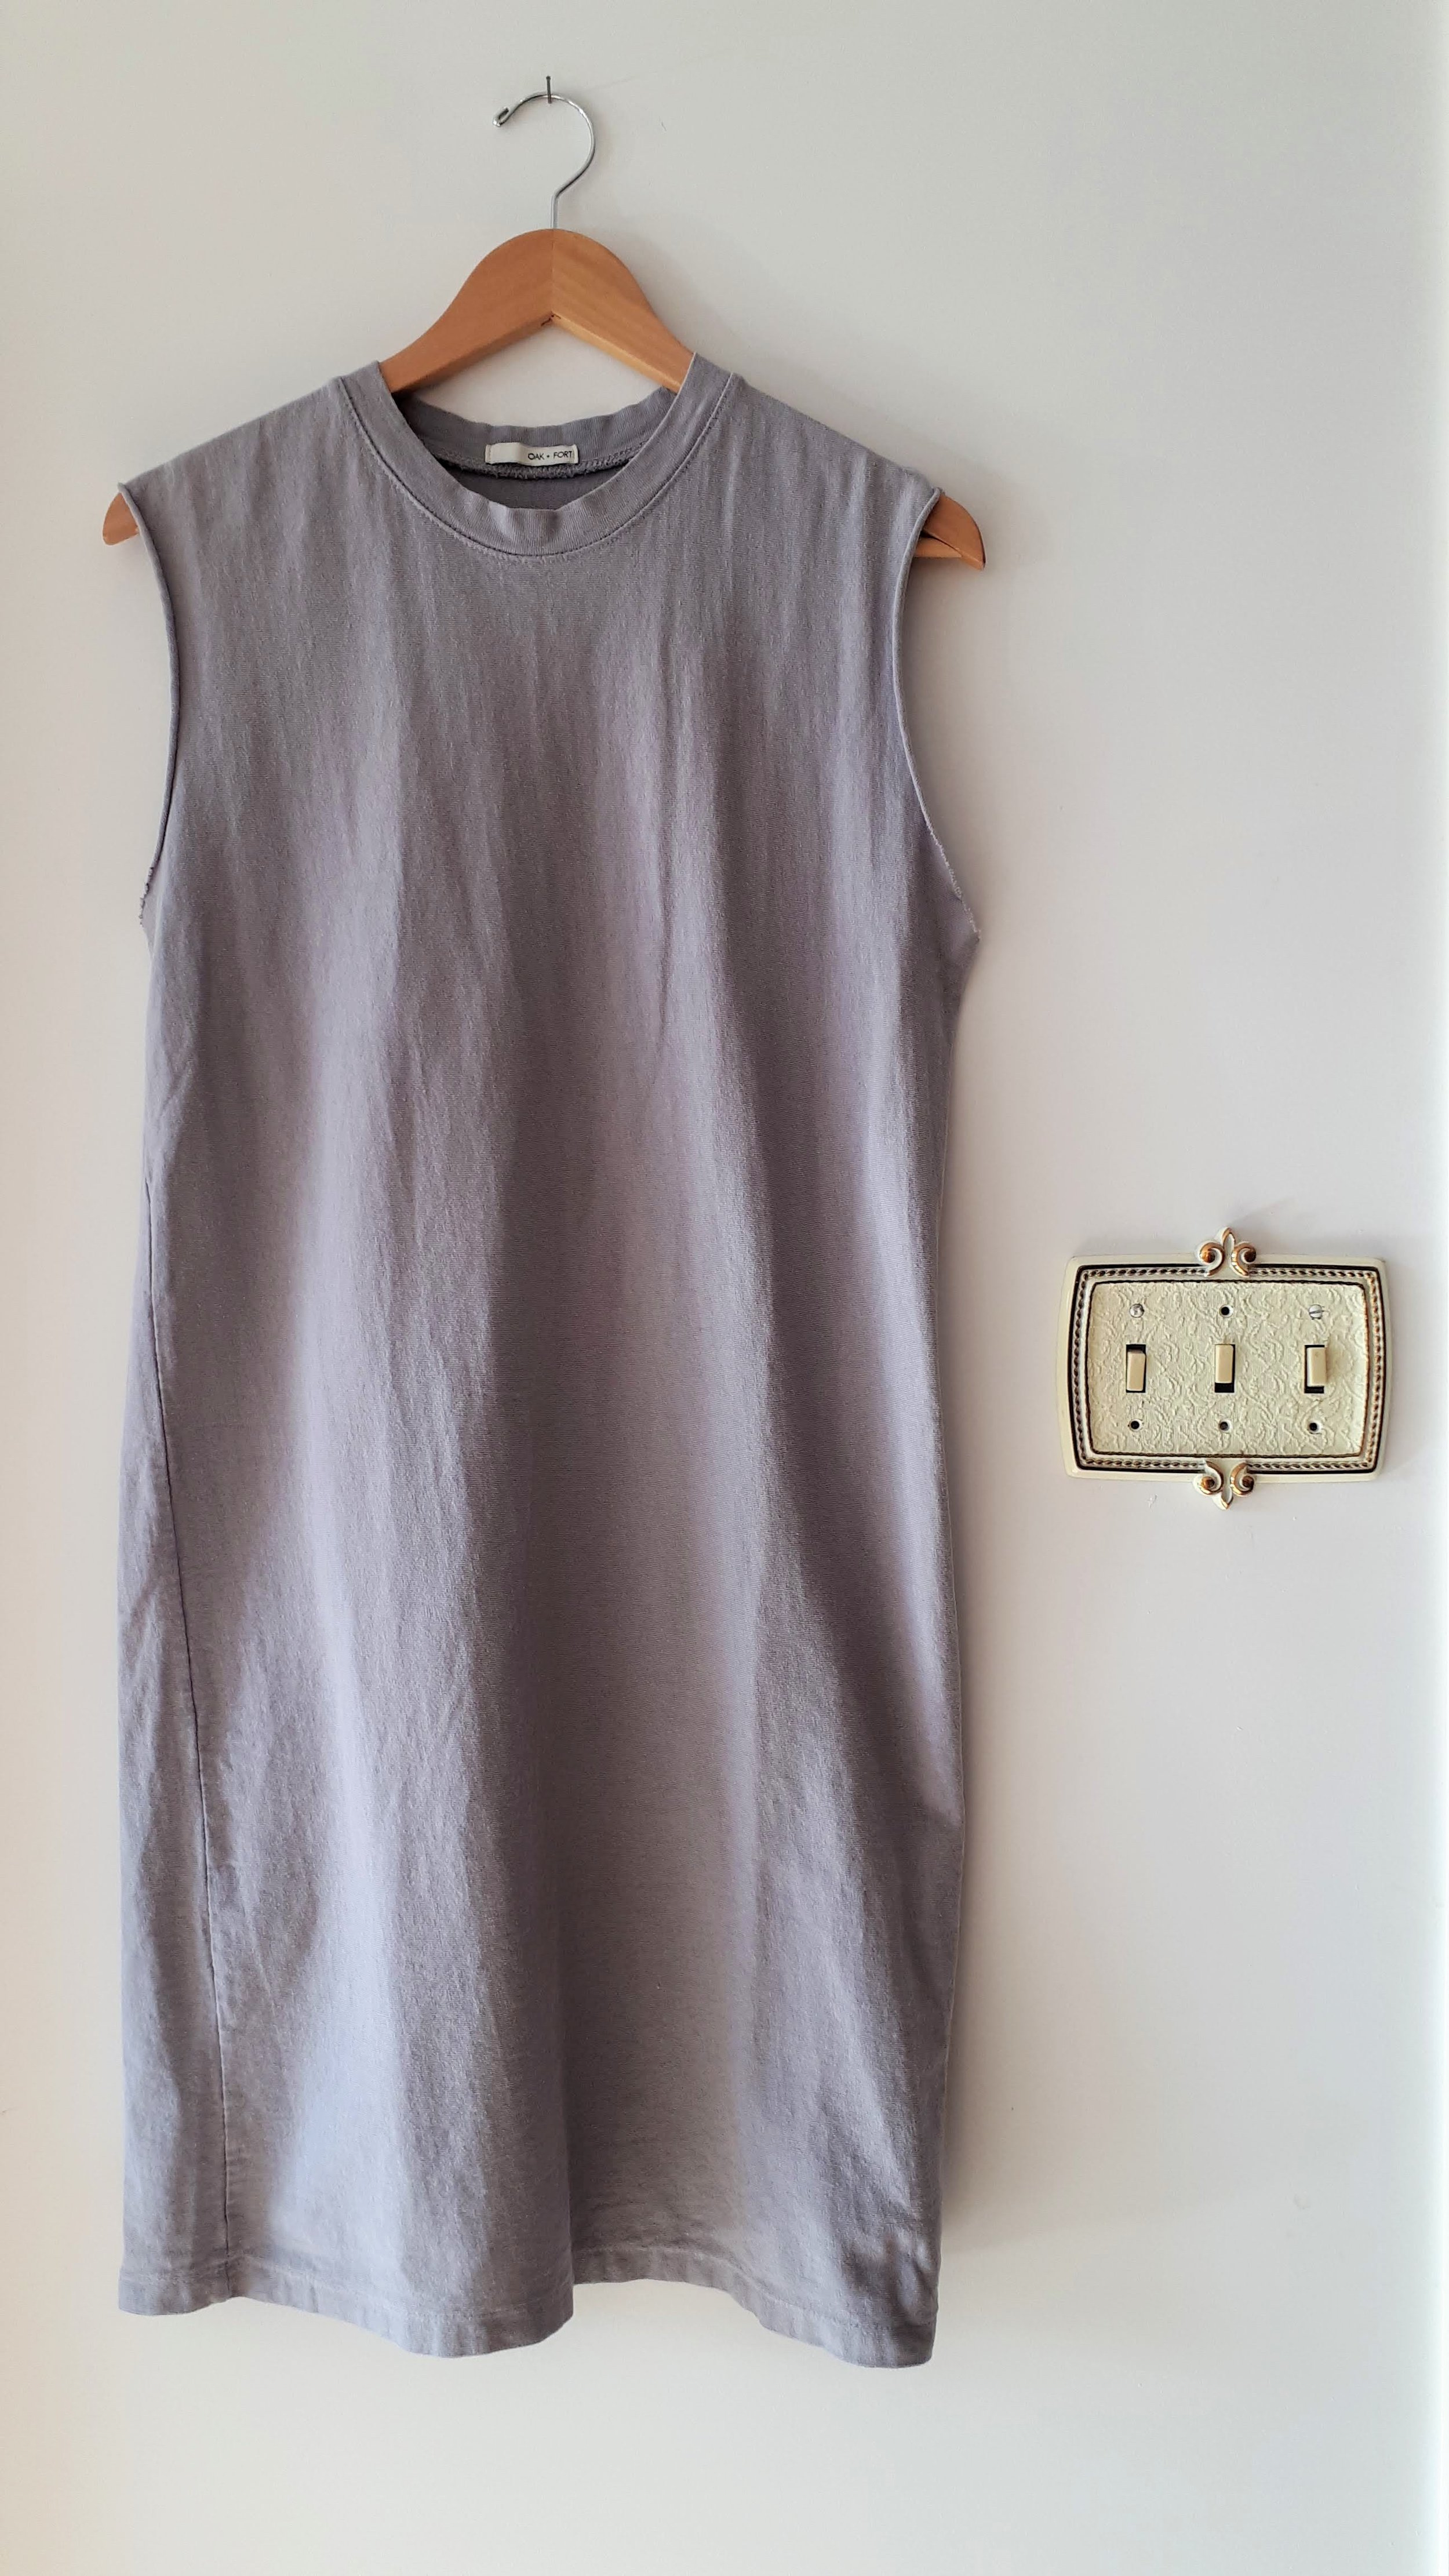 Oak and Fort; Size M, $48